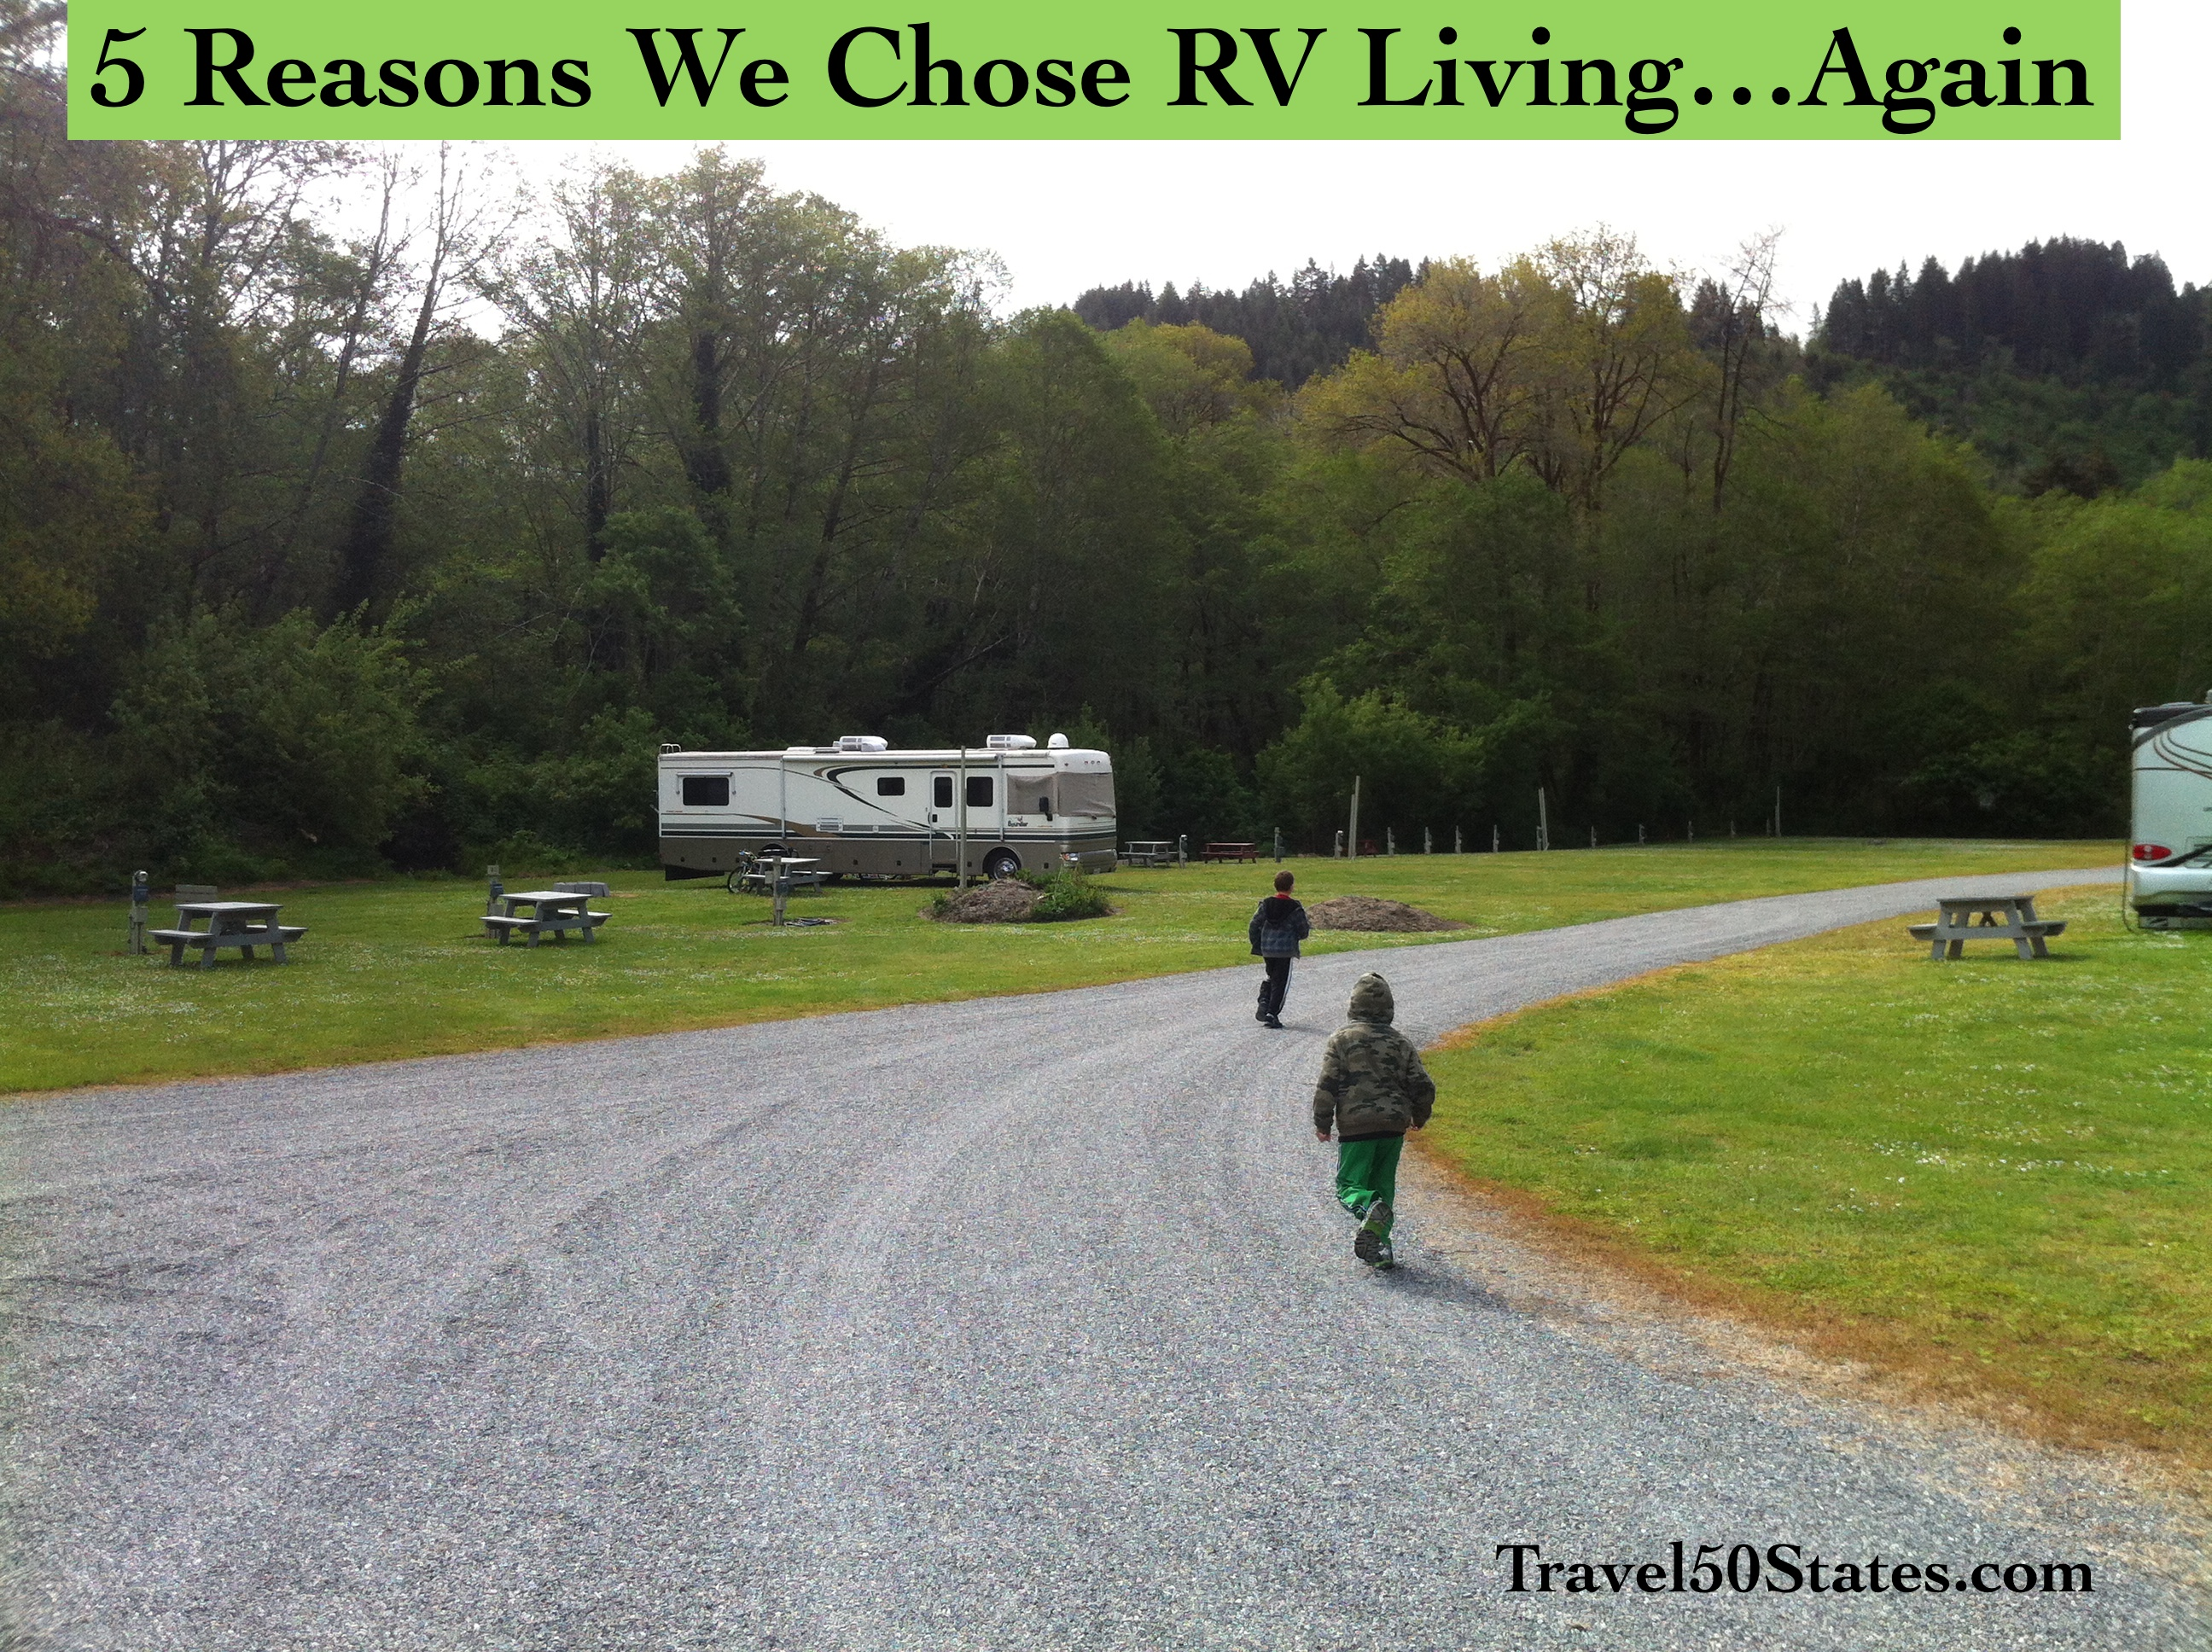 5 Reasons We Chose RV Living…Again